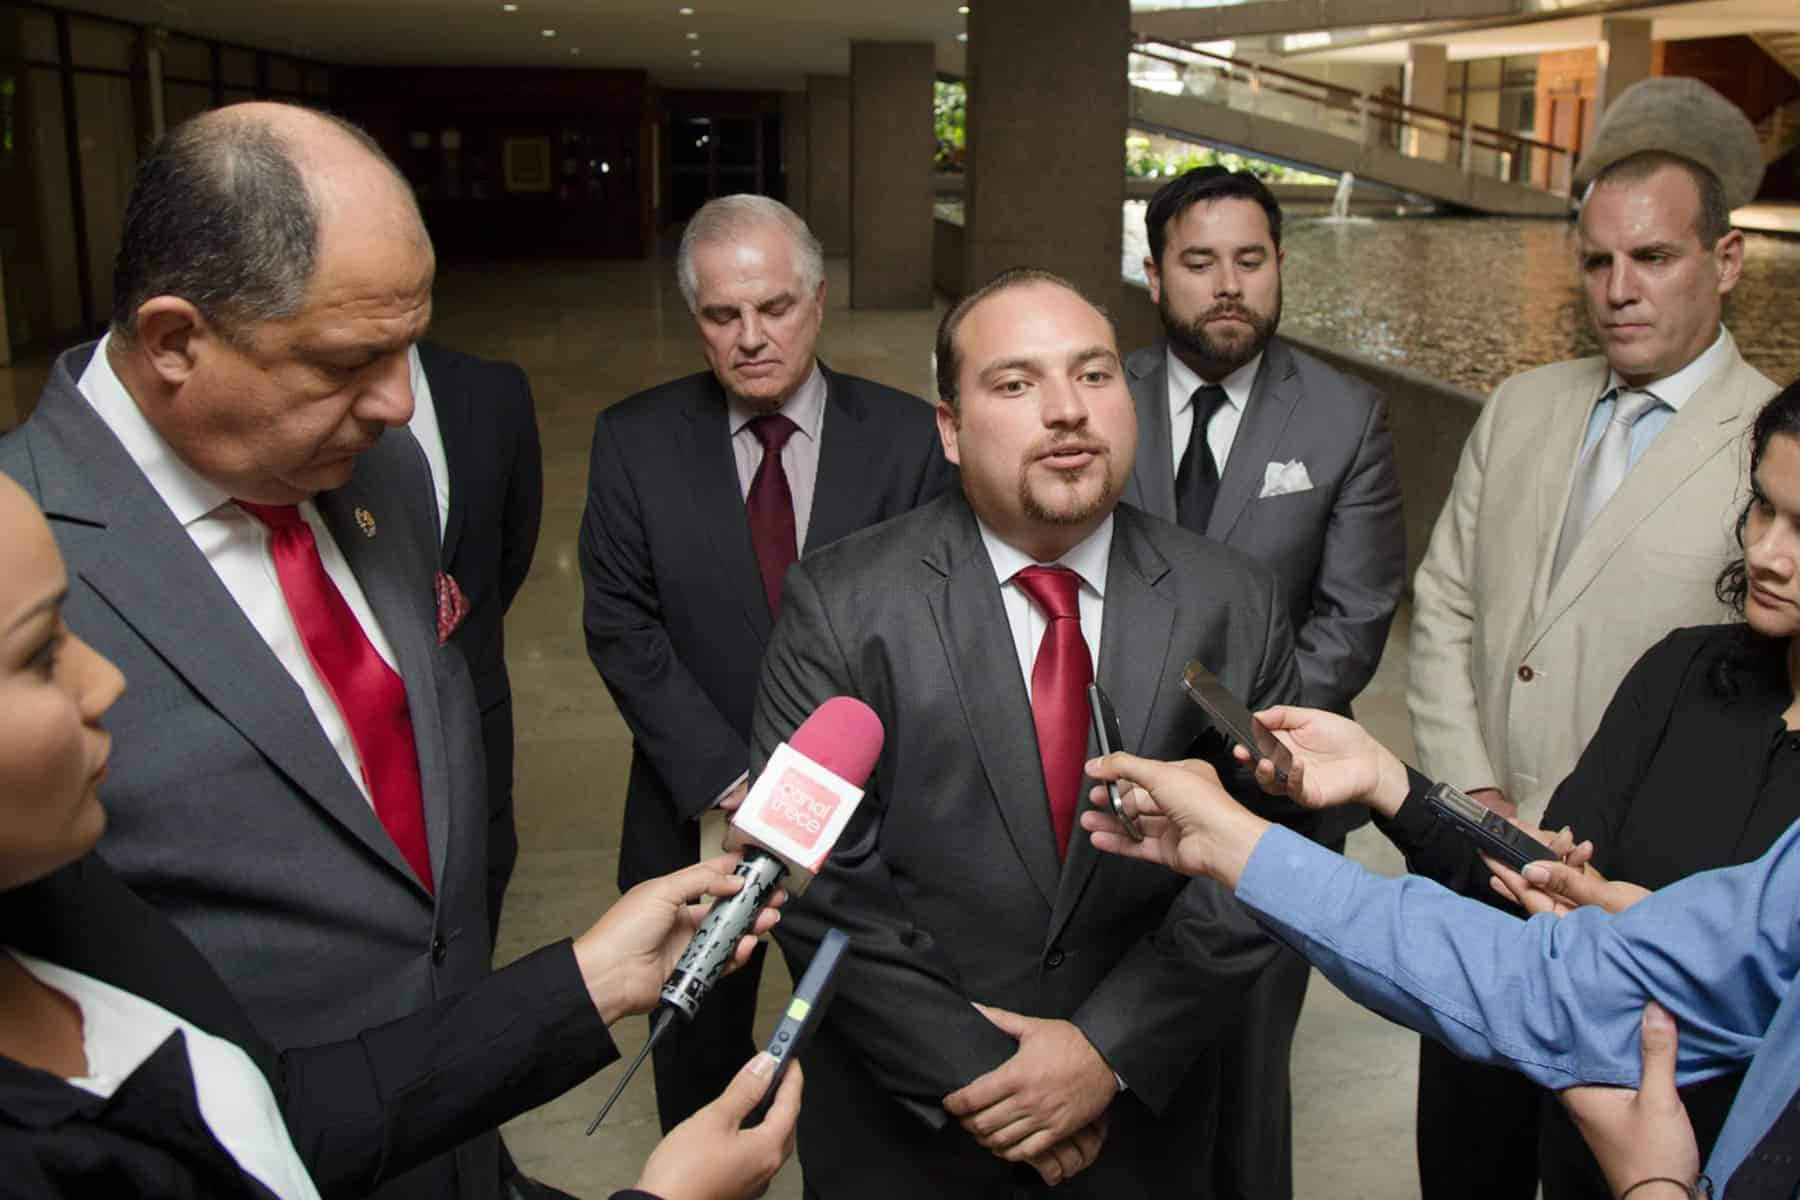 Costa Rica's President Luis Guillermo Solís (left) and CANATUR President Pablo Heriberto Araya after a meeting to discuss the needs of the tourism industry, March 25, 2015.